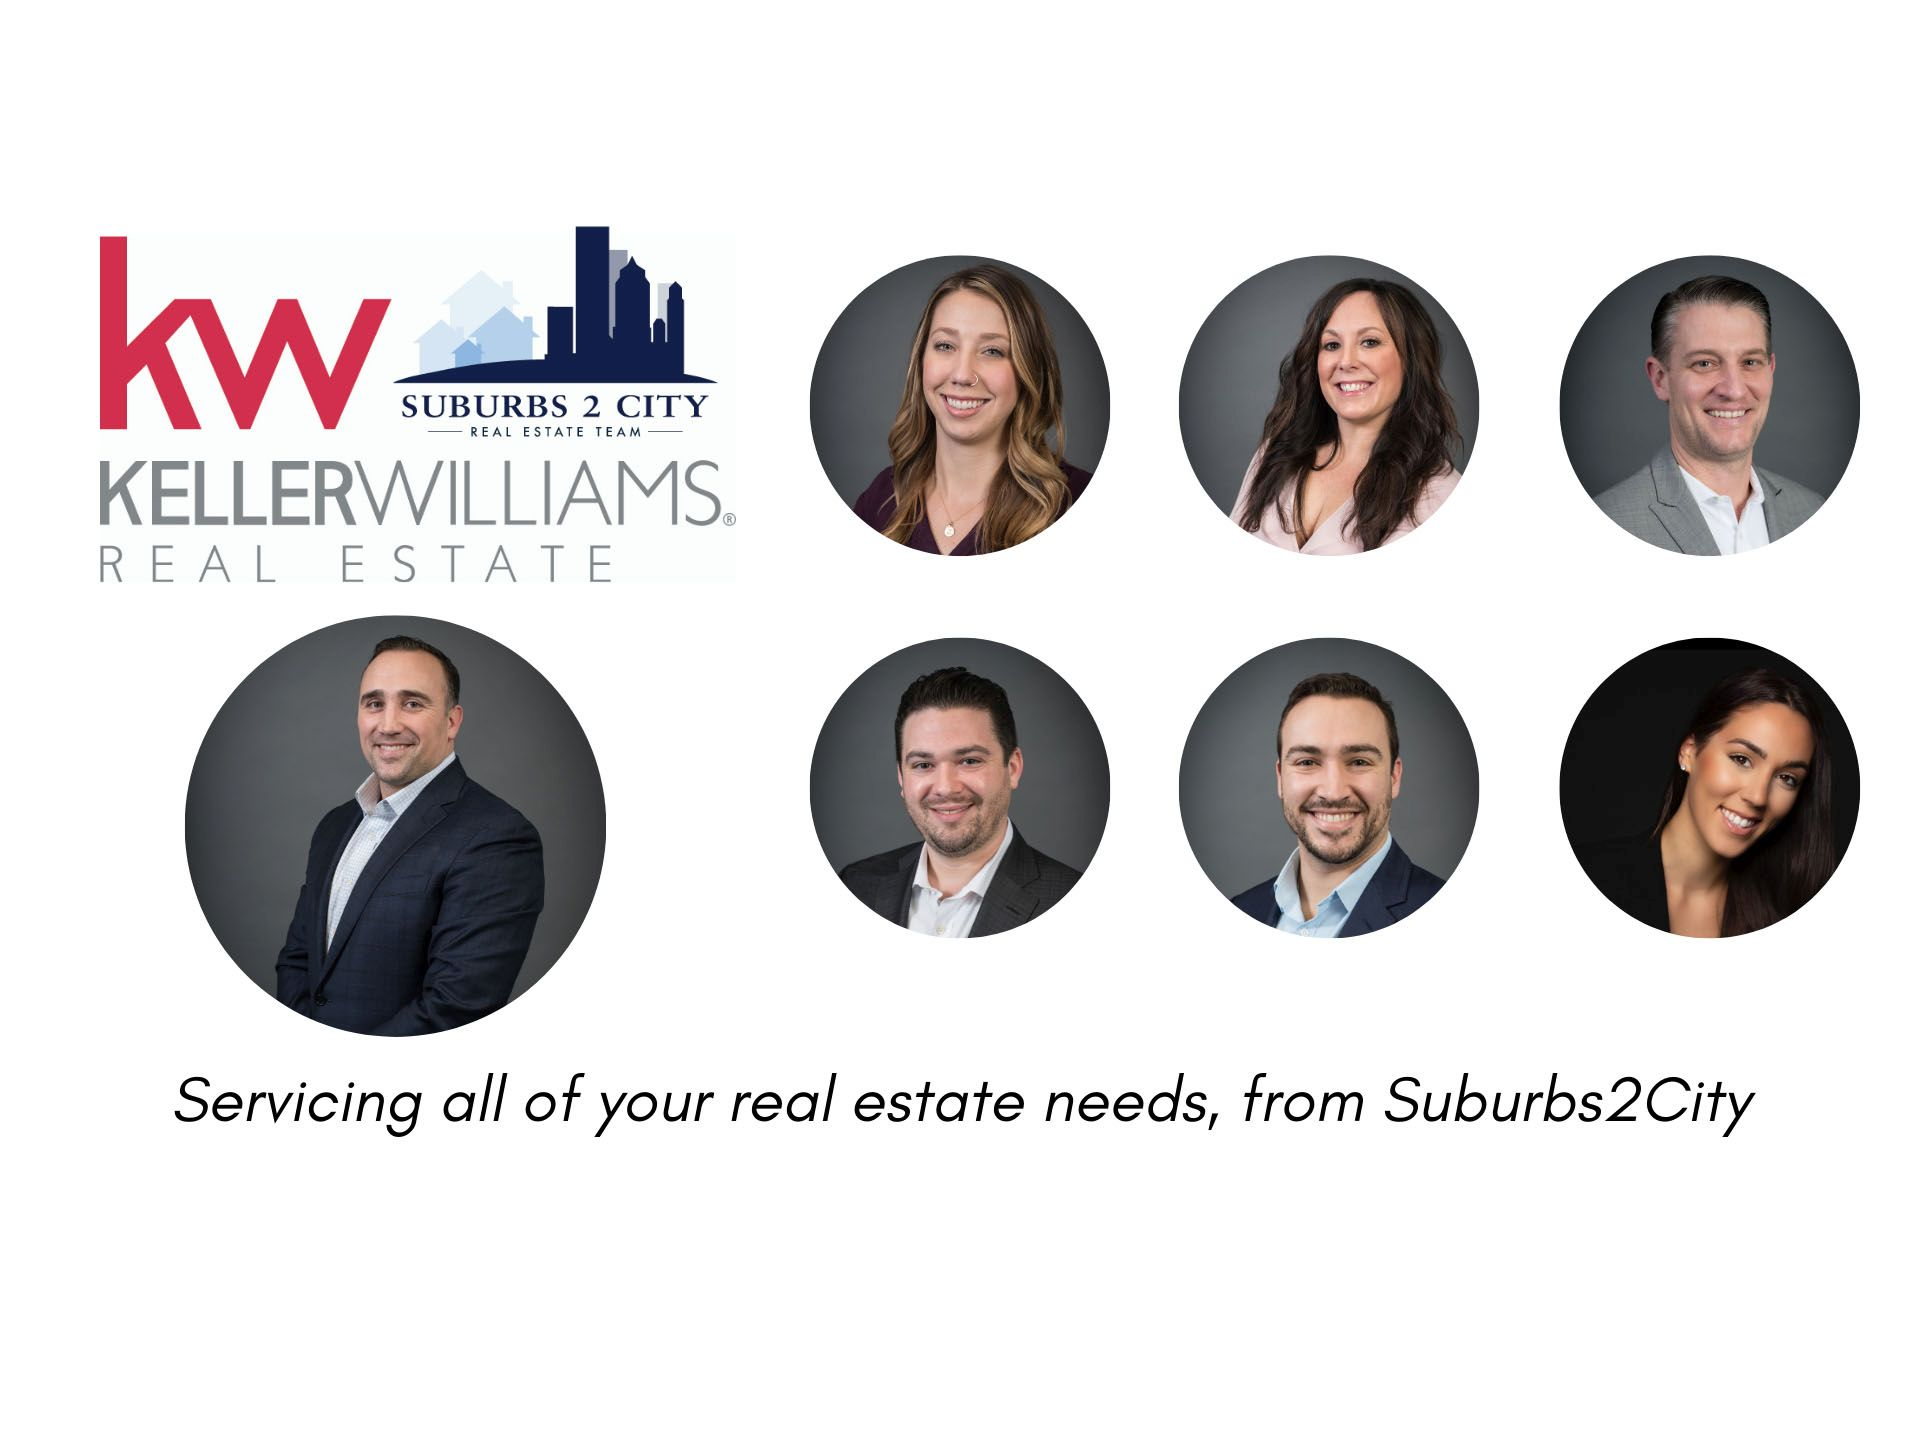 The Suburbs2City Team Servicing all of your real estate needs, from Suburbs2City